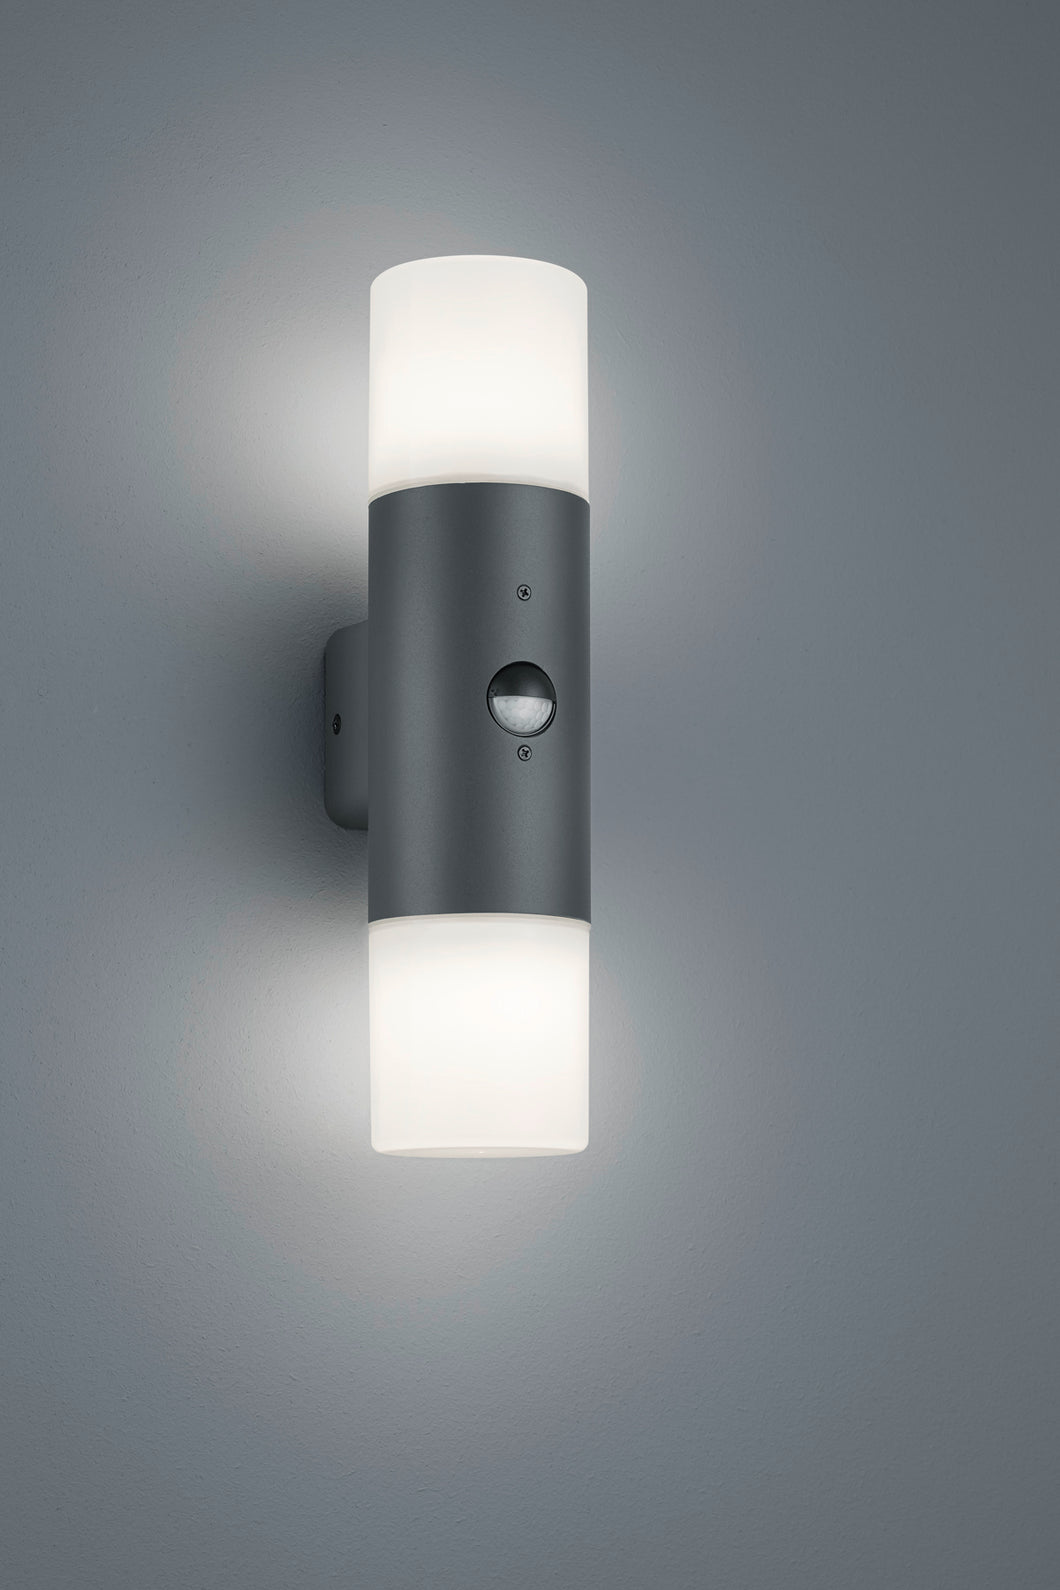 HOOSIC Wall Light with motion sensor